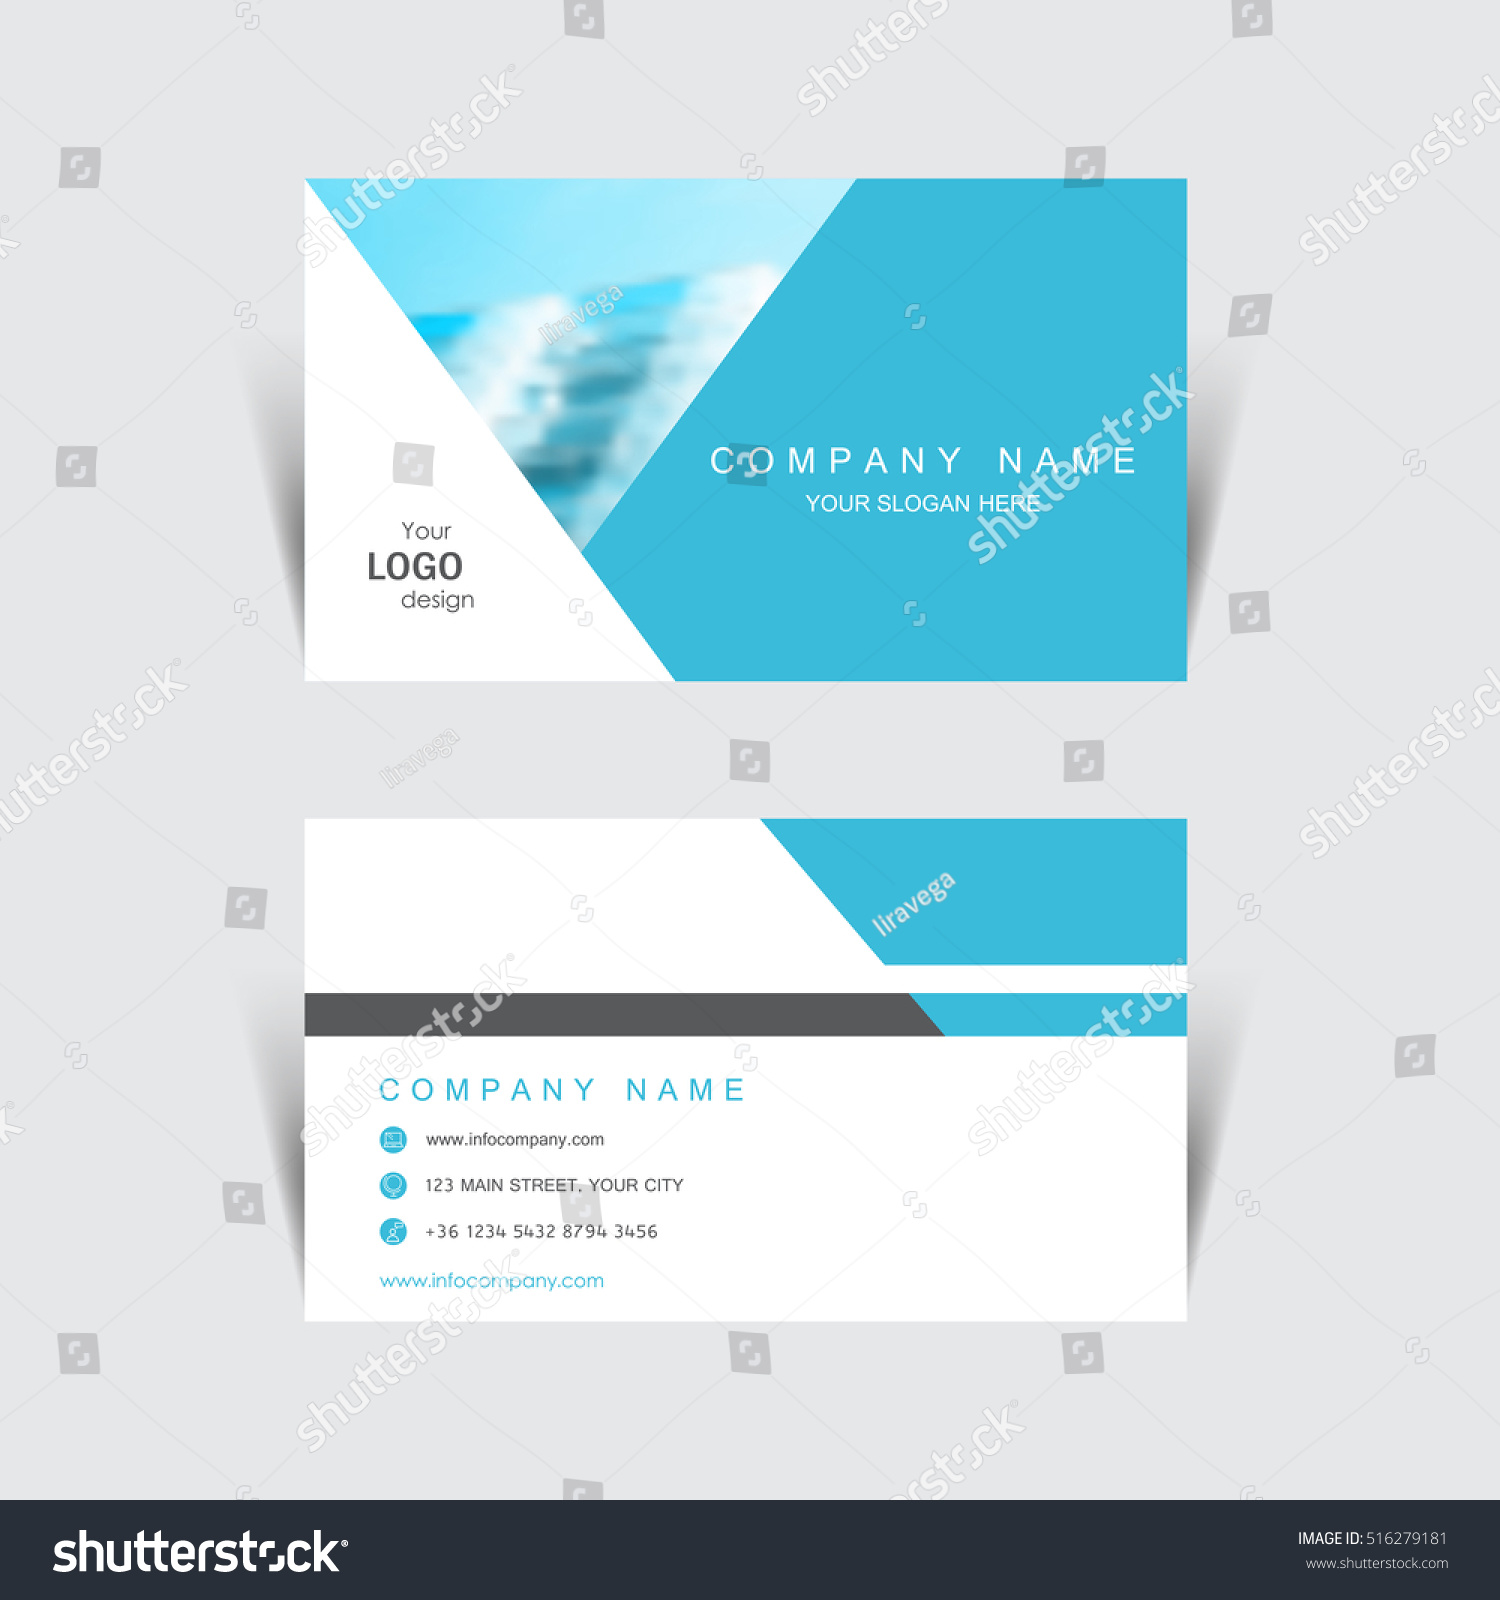 Business Card Print Template Design Vector Stock Vector